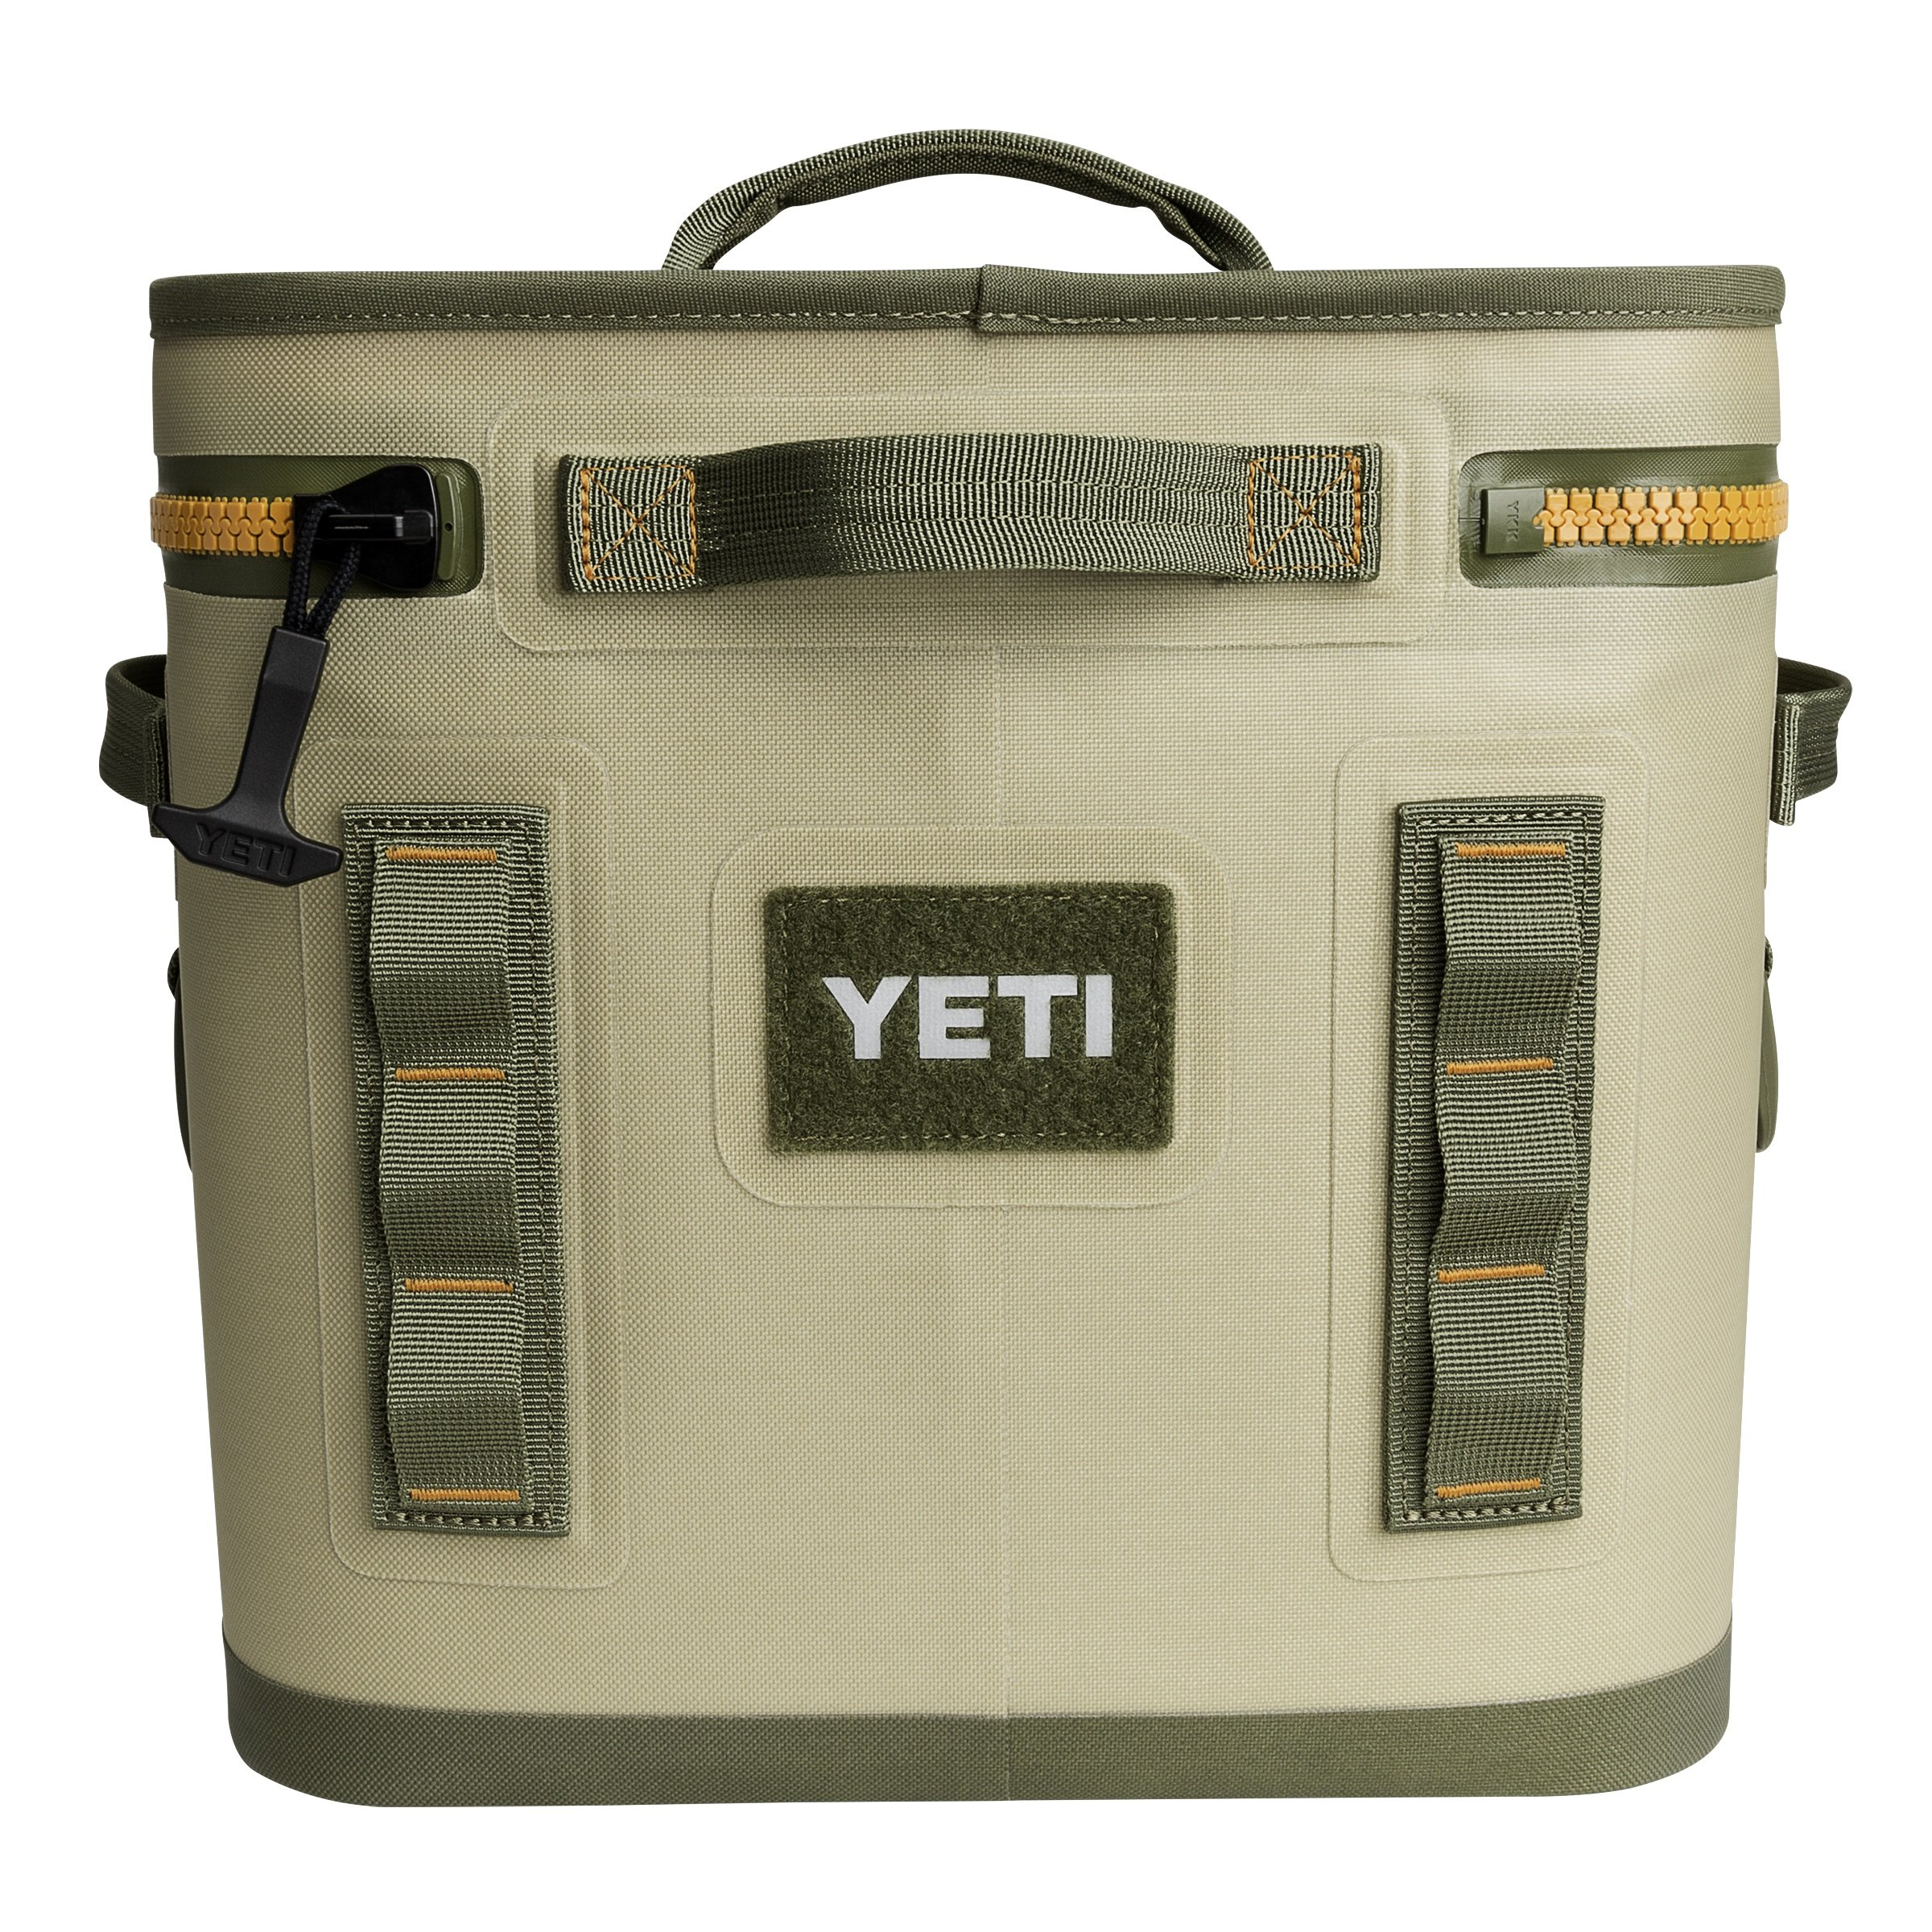 YETI Hopper Flip 12 Portable Cooler with Top Handle, Field Tan by YETI (Image #2)